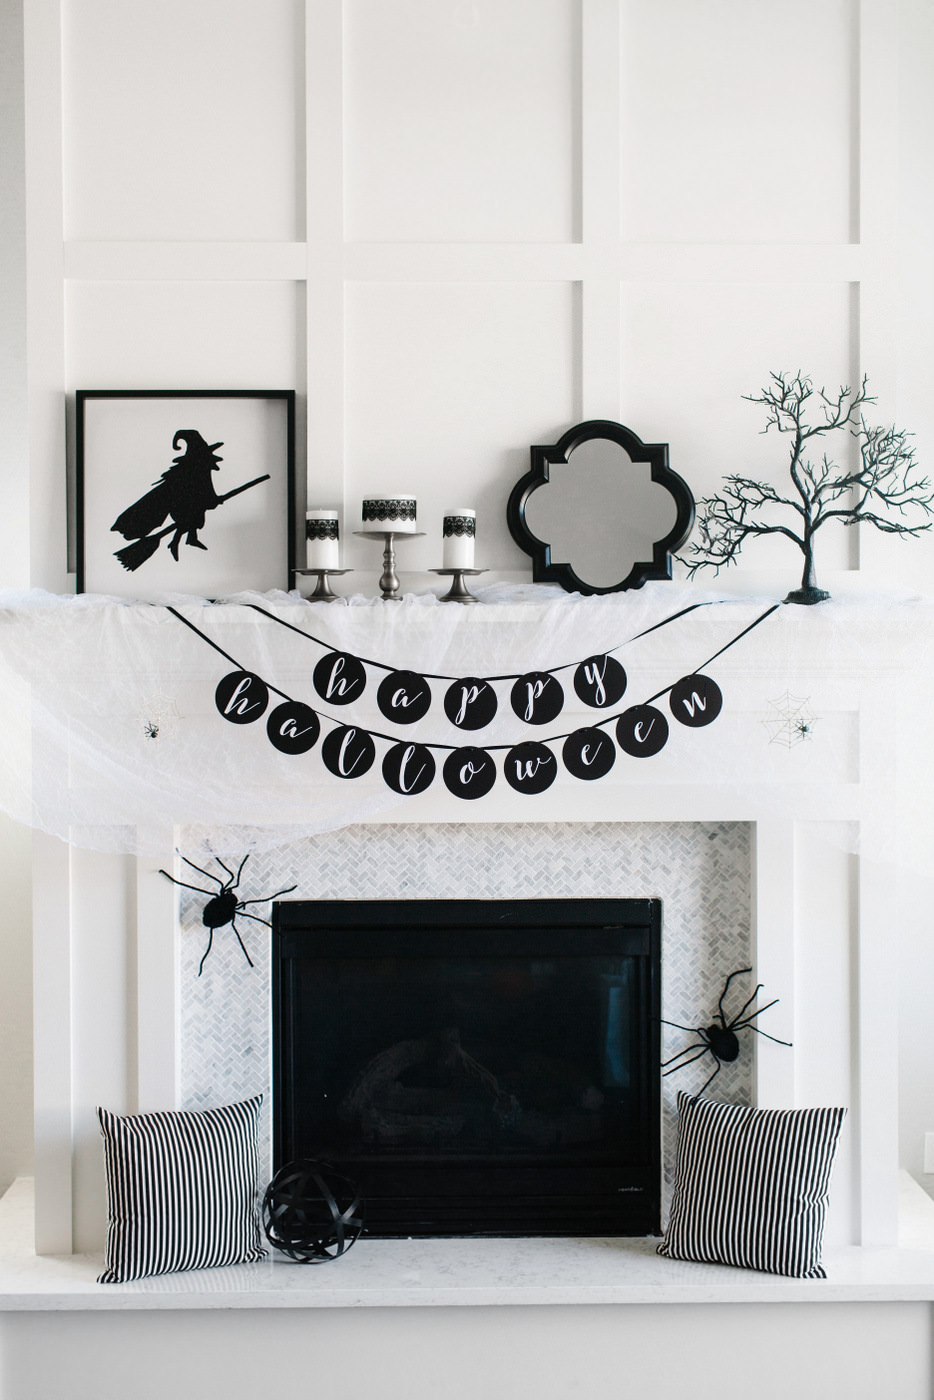 13 Spooktacular Halloween Ideas for Your Fireplace Mantel